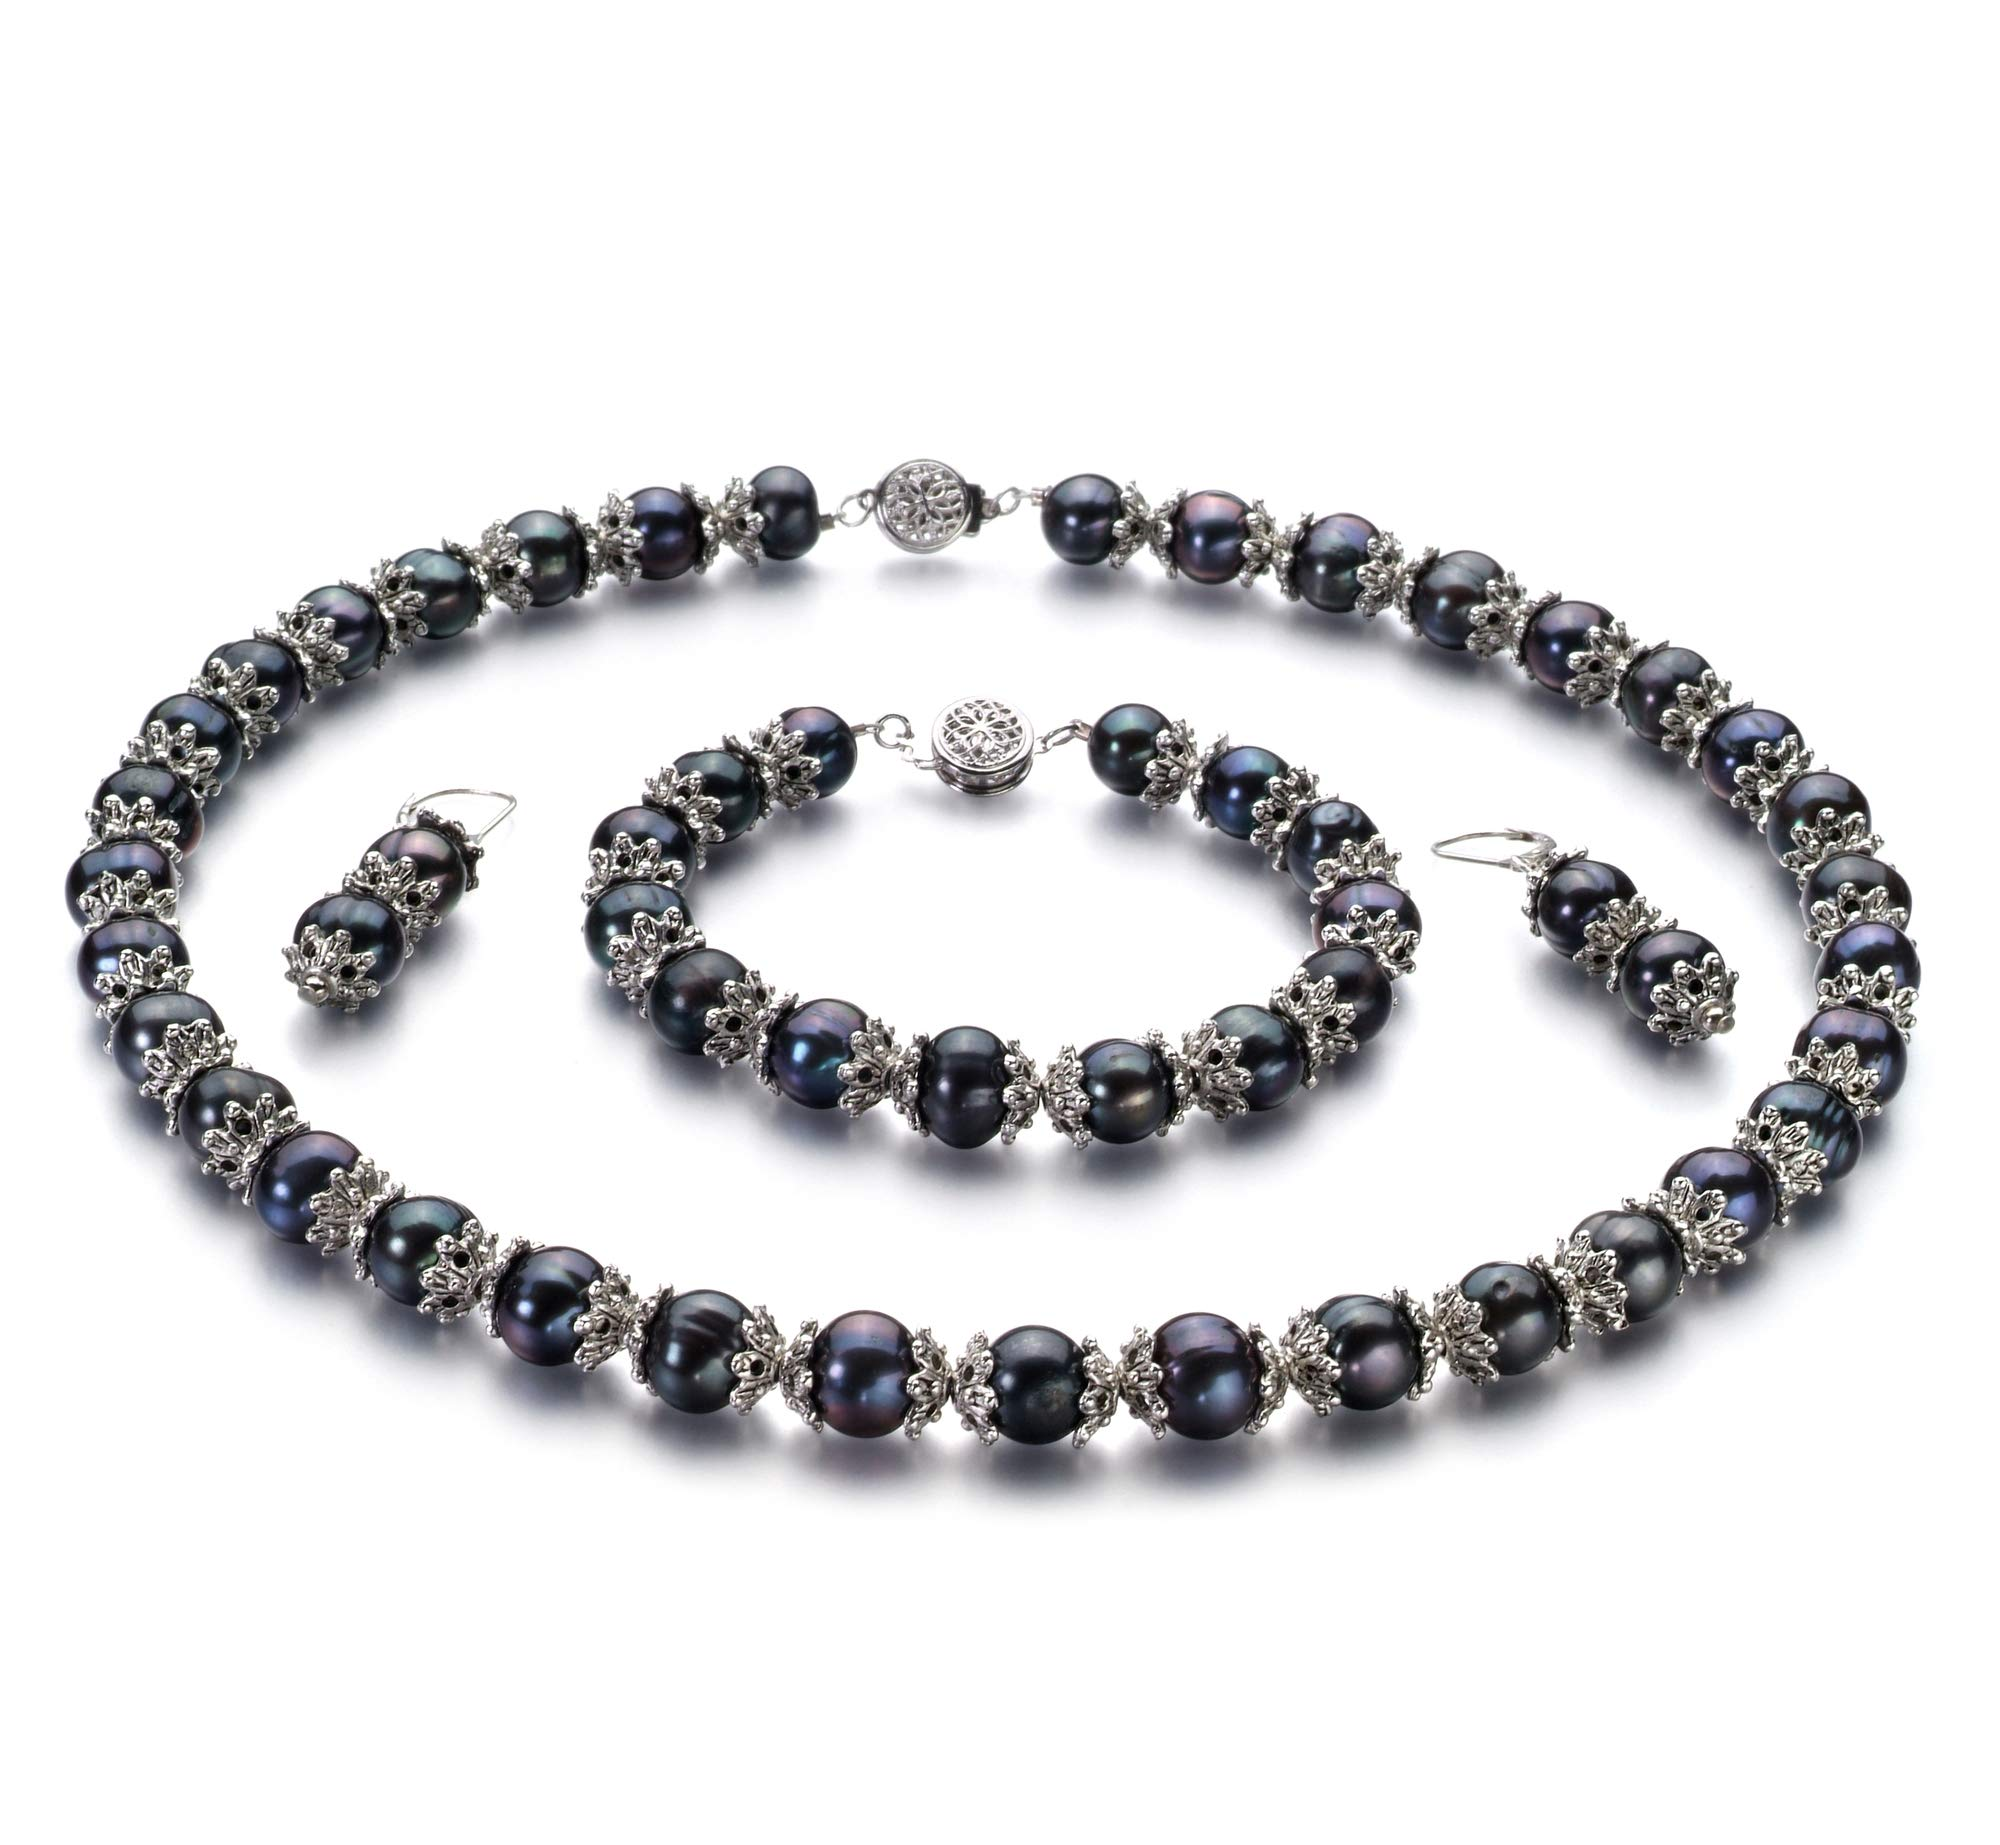 MarieAnt Black 8-9mm AA Quality Freshwater 925 Sterling Silver Cultured Pearl Set For Women